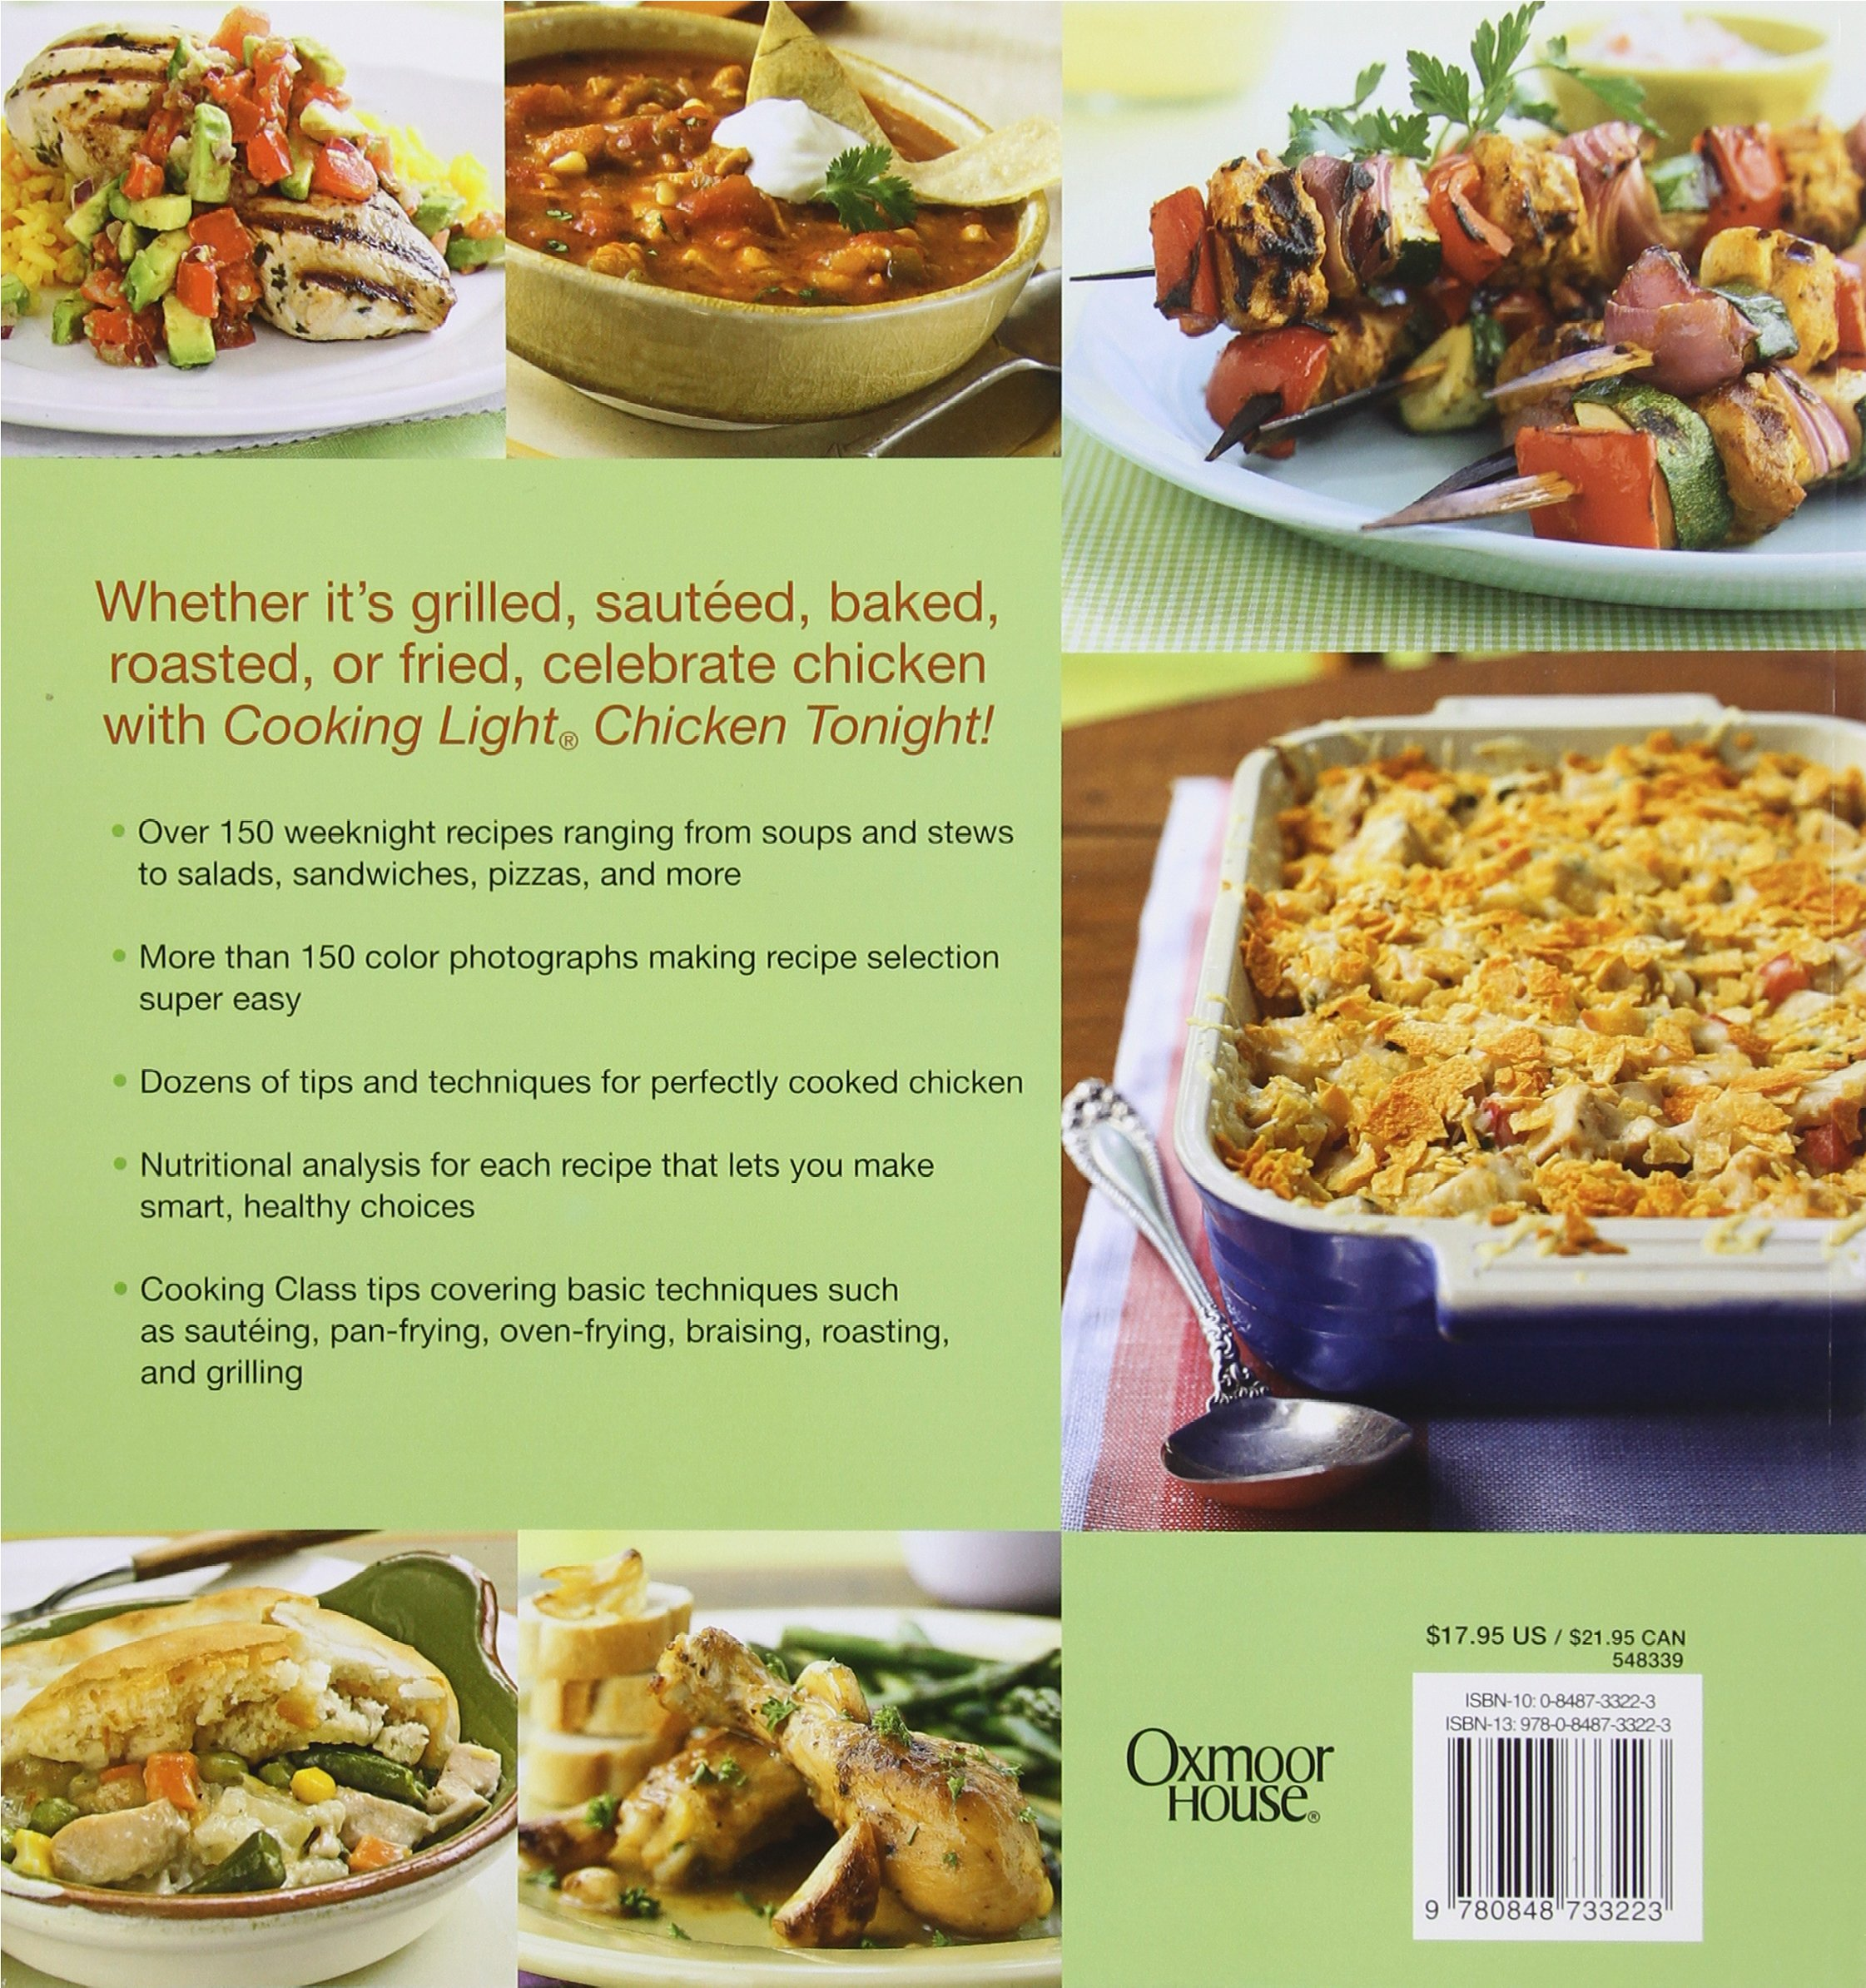 Cooking Light Chicken Tonight!: Great Weeknight Meals Designed For Speed  And Convenience: Editors Of Cooking Light Magazine: 9780848733223:  Amazon.com: ...